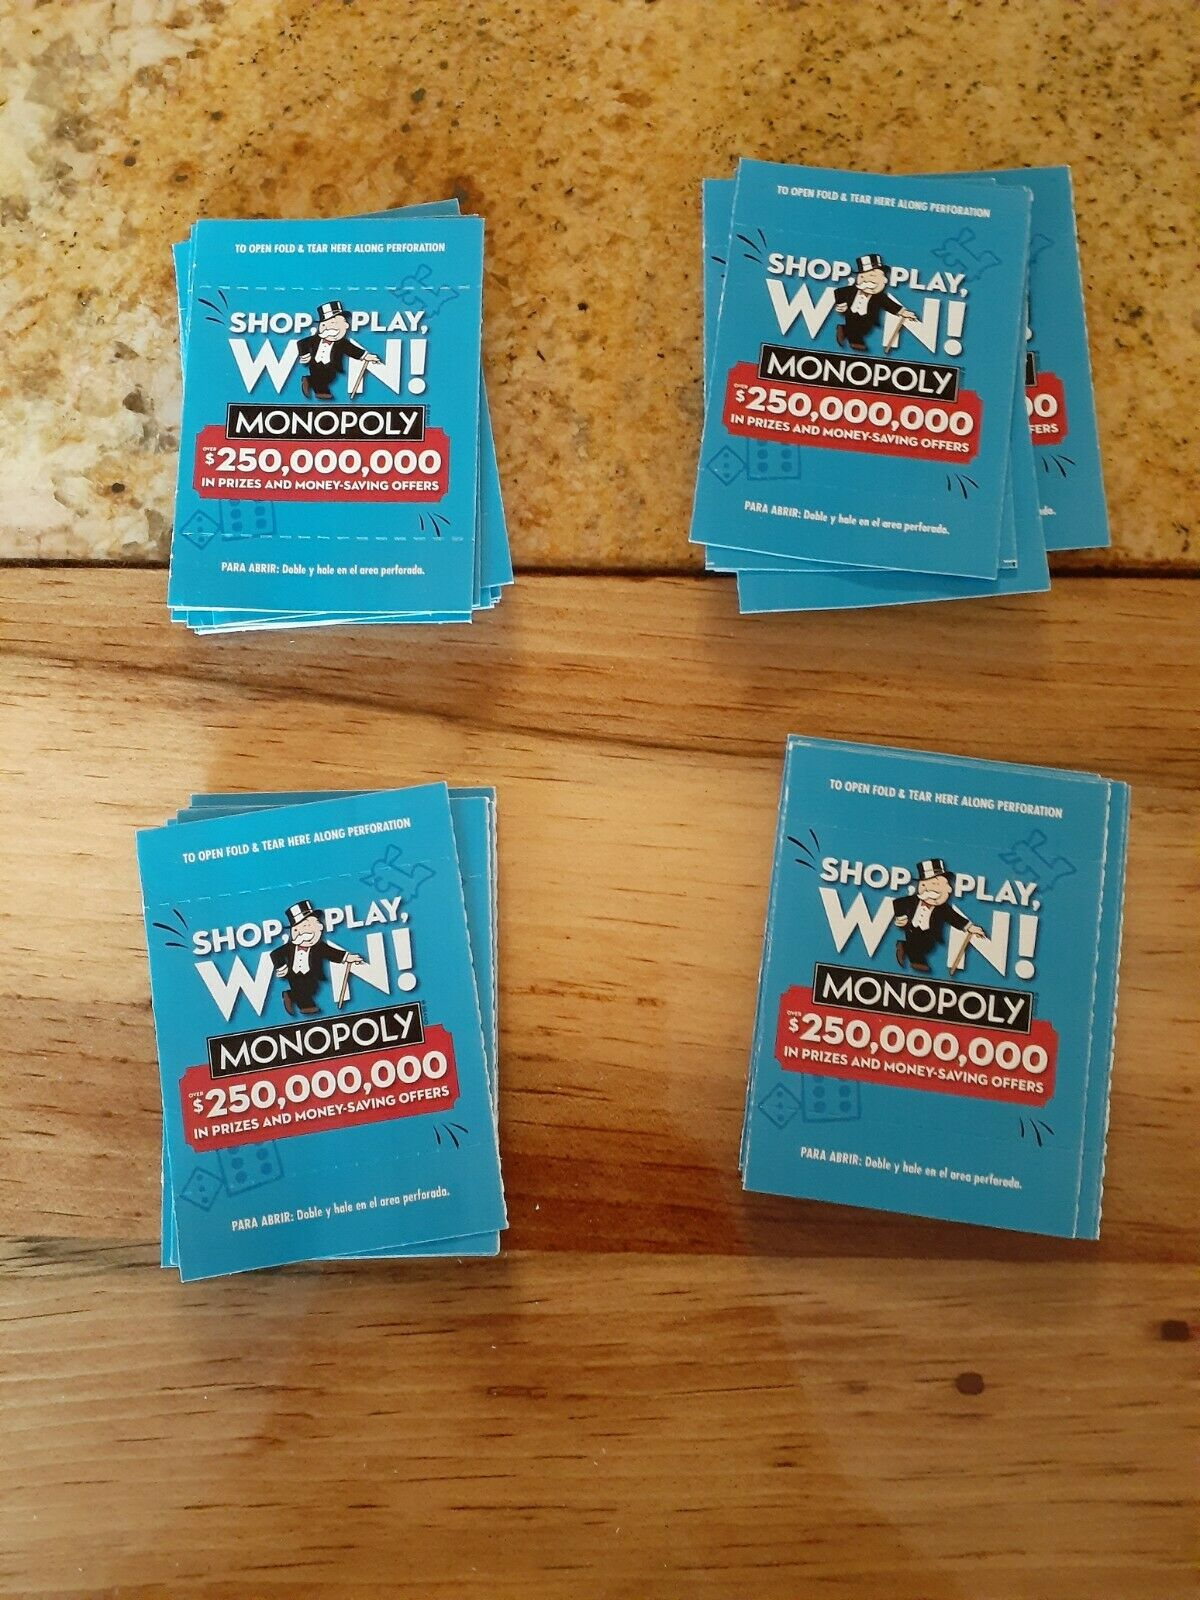 40 2020 Albertsons Safeway Vons Monopoly Tickets New Unopened 40 Pieces For Sale Online